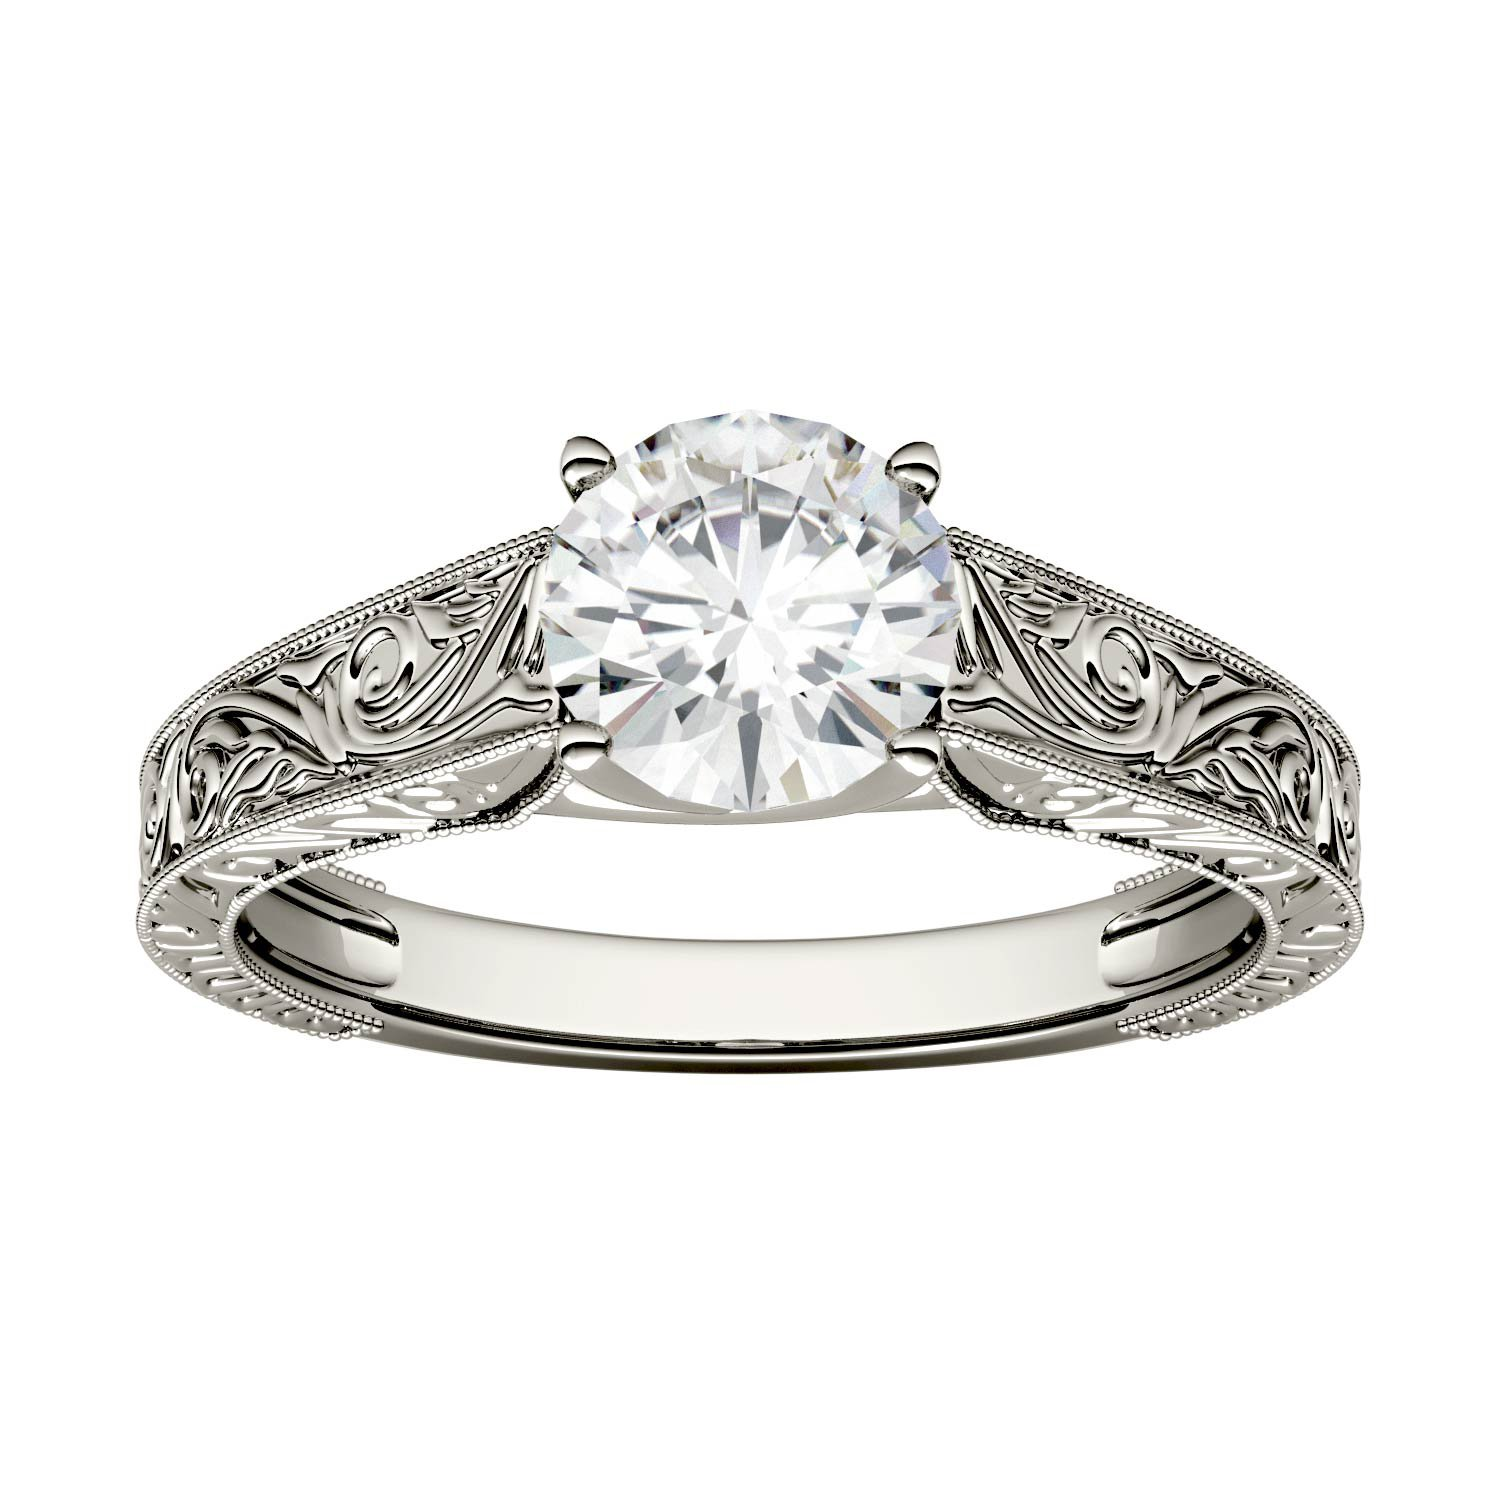 Forever One Round 6.5mm Moissanite Vintage Engagement Ring-size 6, 1.00ct DEW By Charles & Colvard